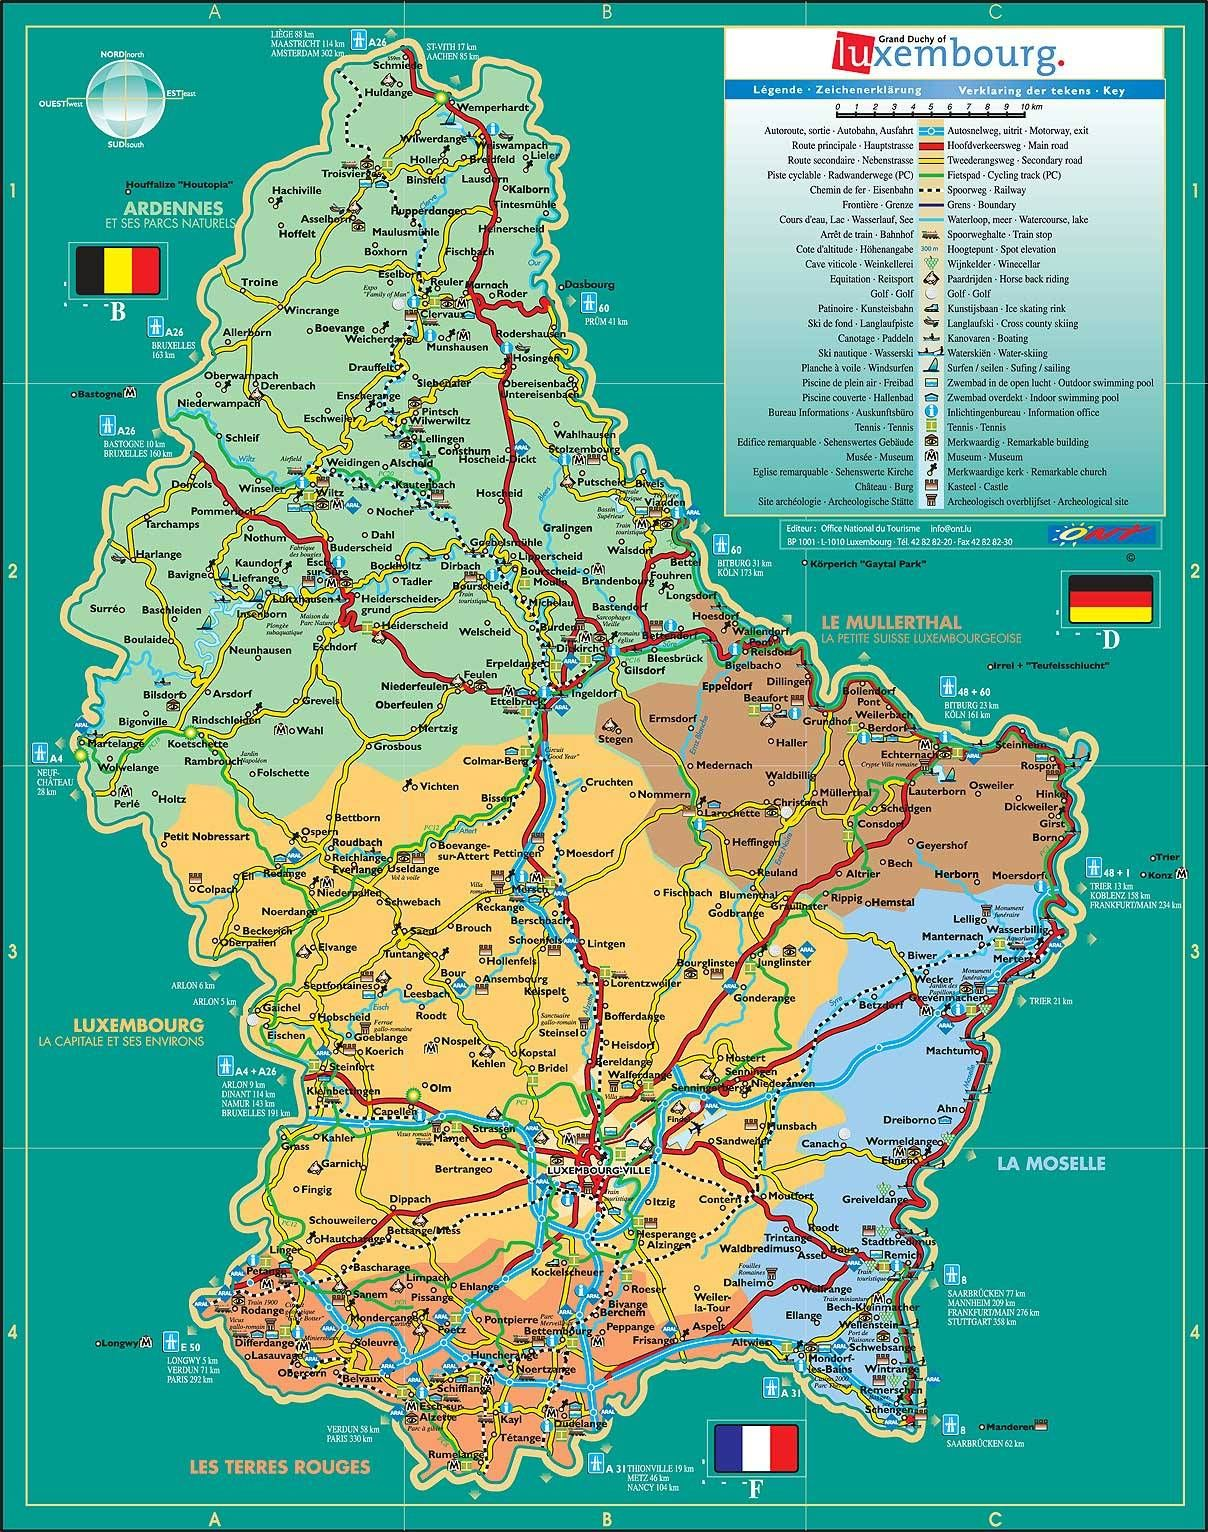 luxembourg | Luxembourg | Tourist map, Travel maps, Luxembourg